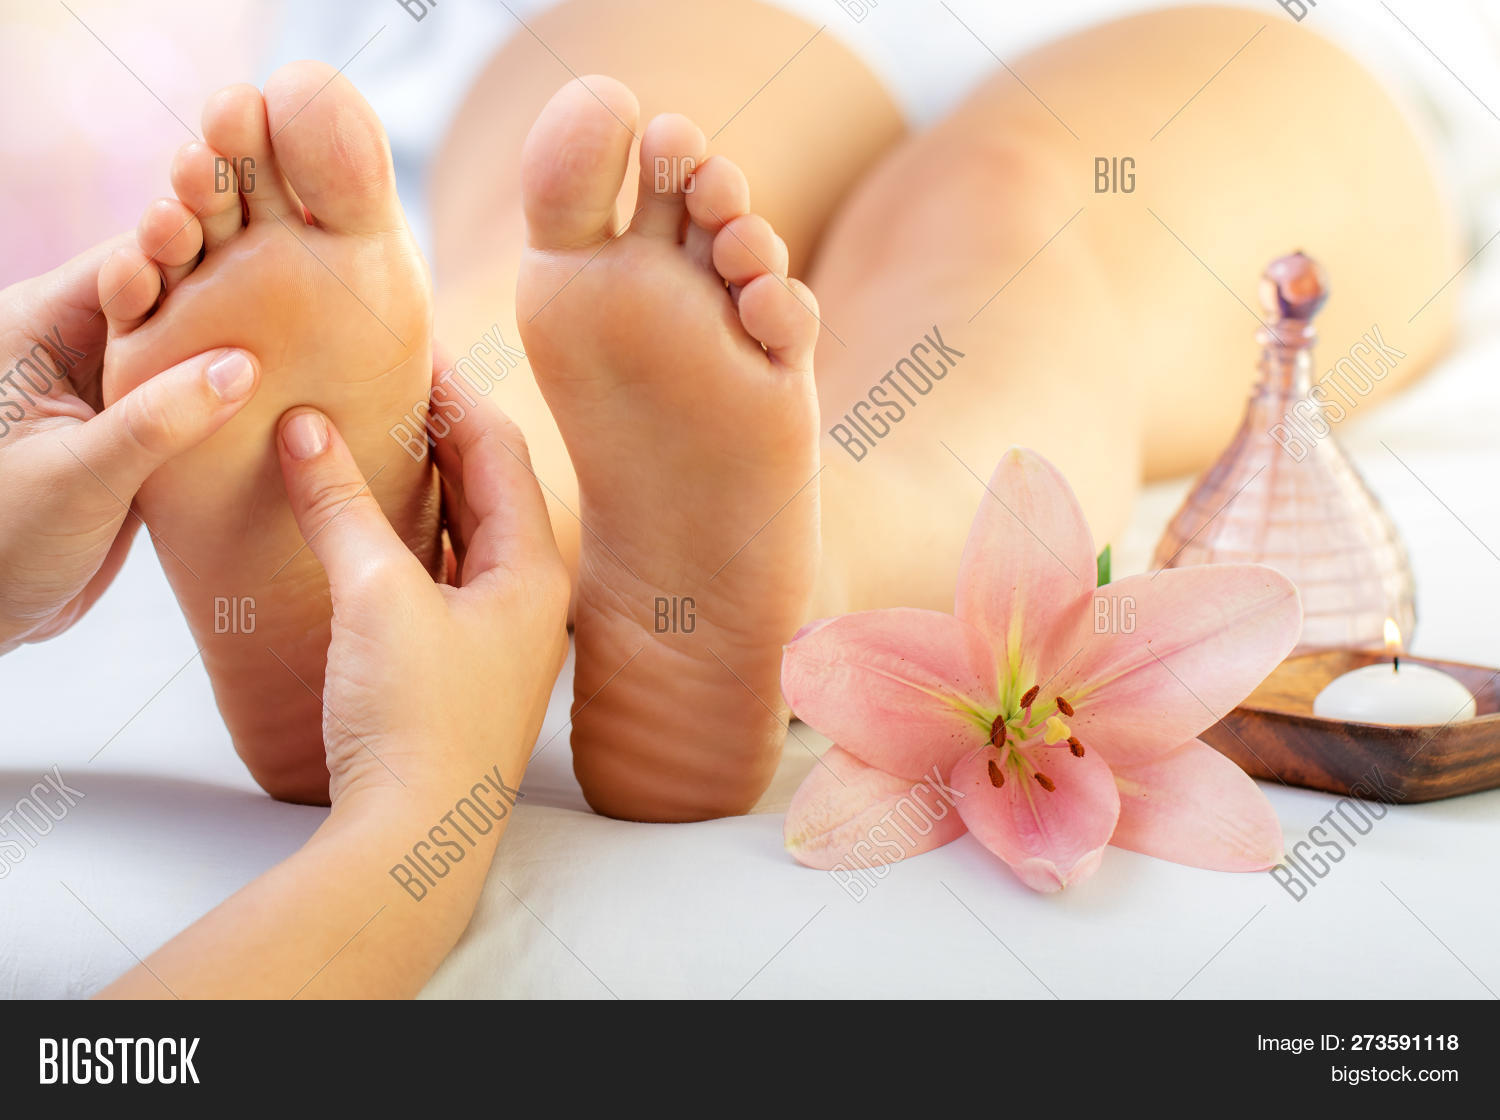 Close up of hands doing foot reflexology massage on female foot. Flower,  candle and massage oil next to feet.